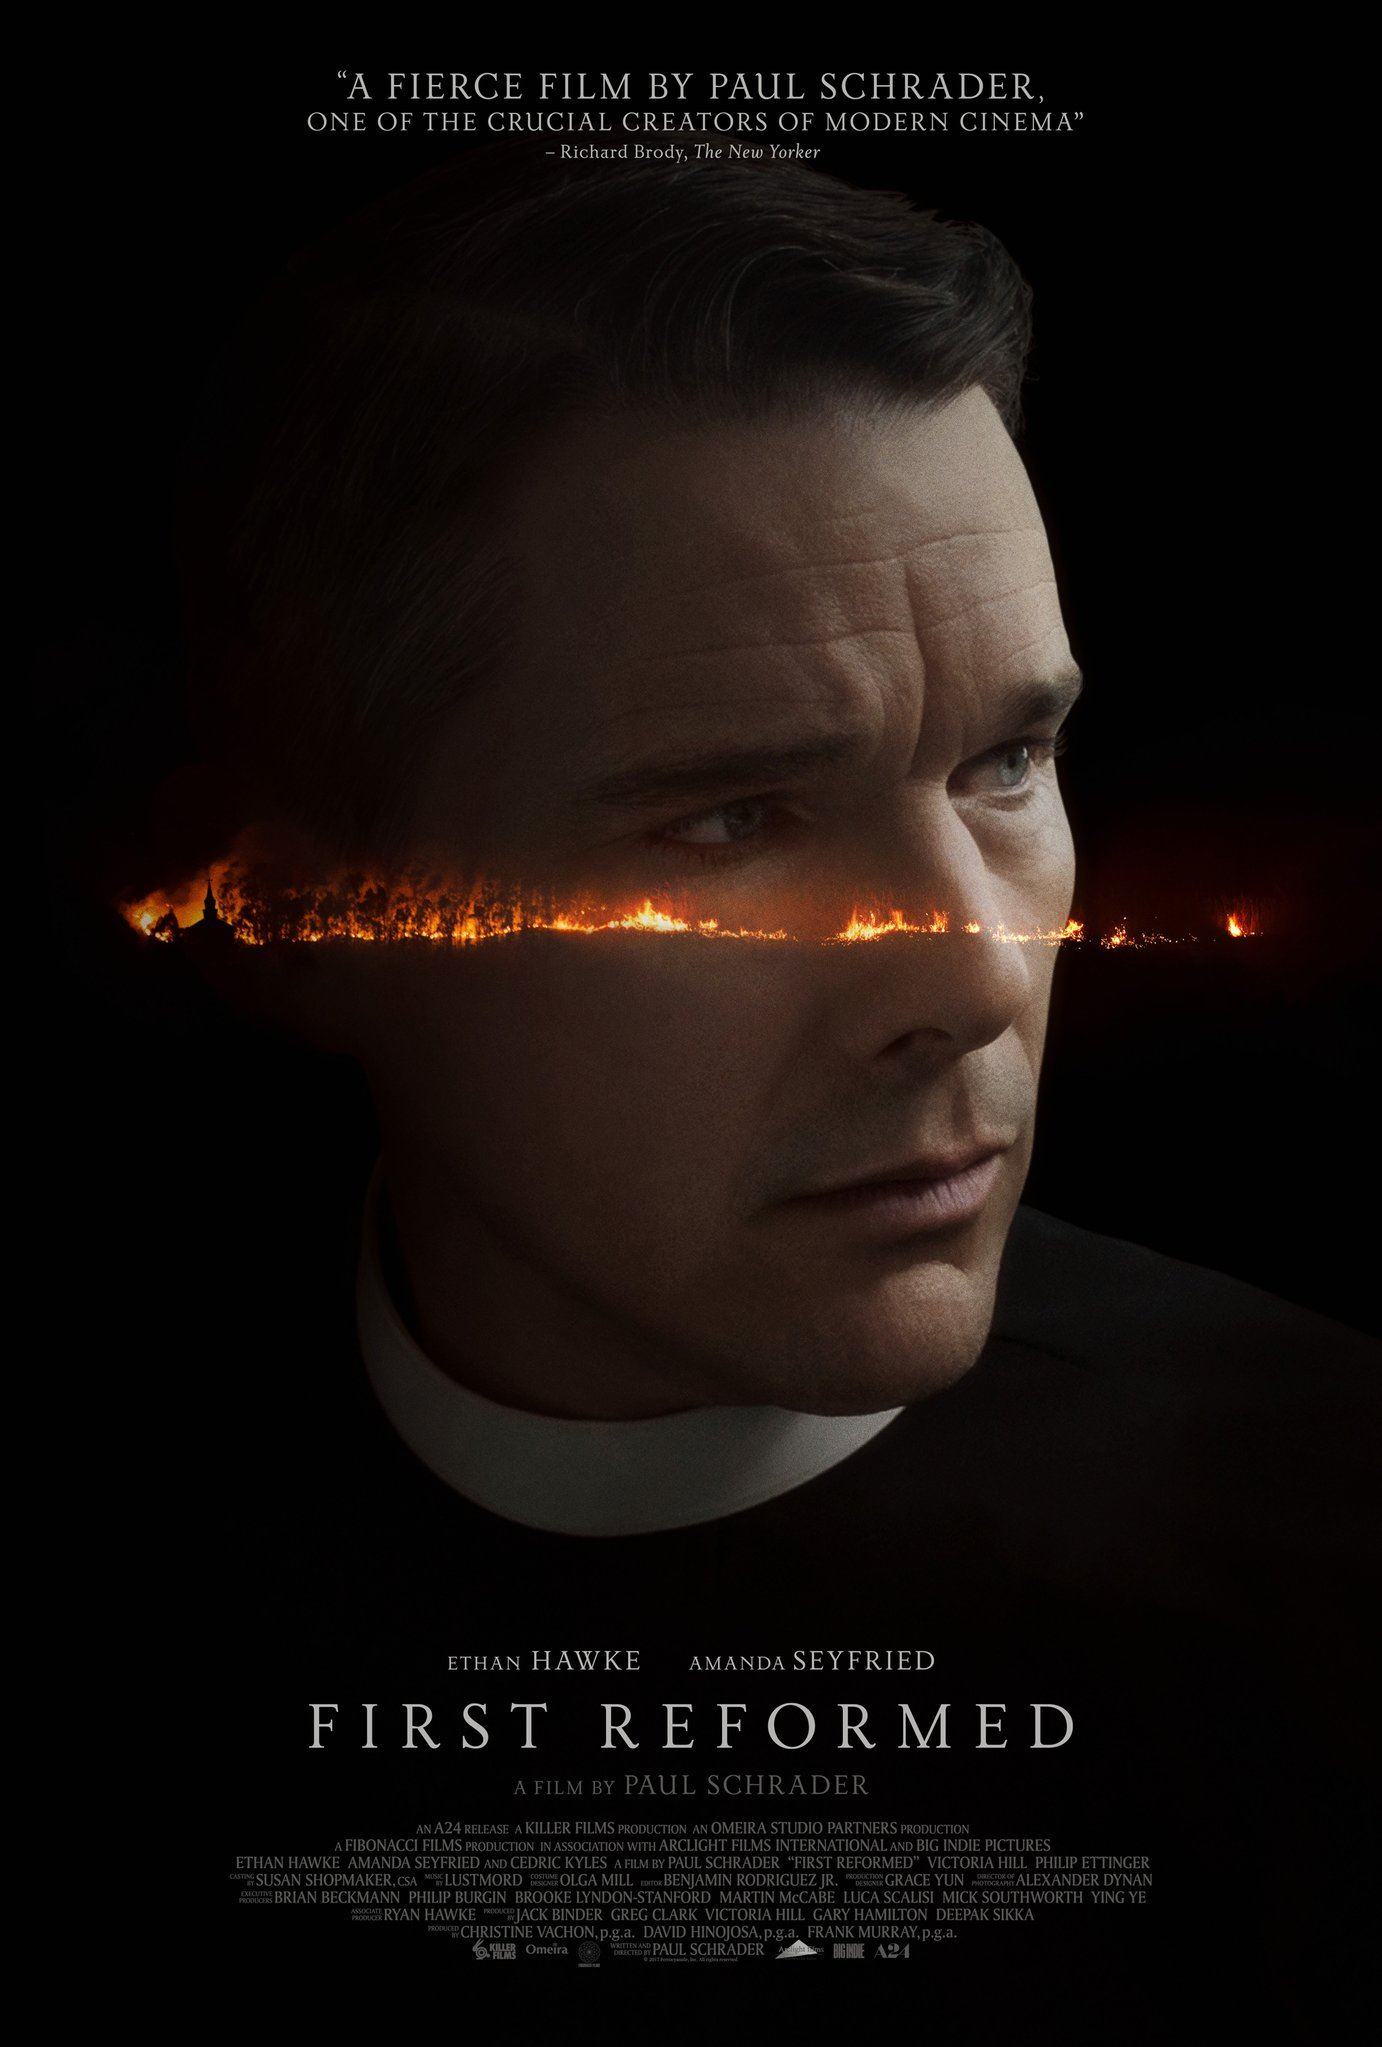 Movie Poster featuring close up image of priest with line of fire running across face. Black backgro